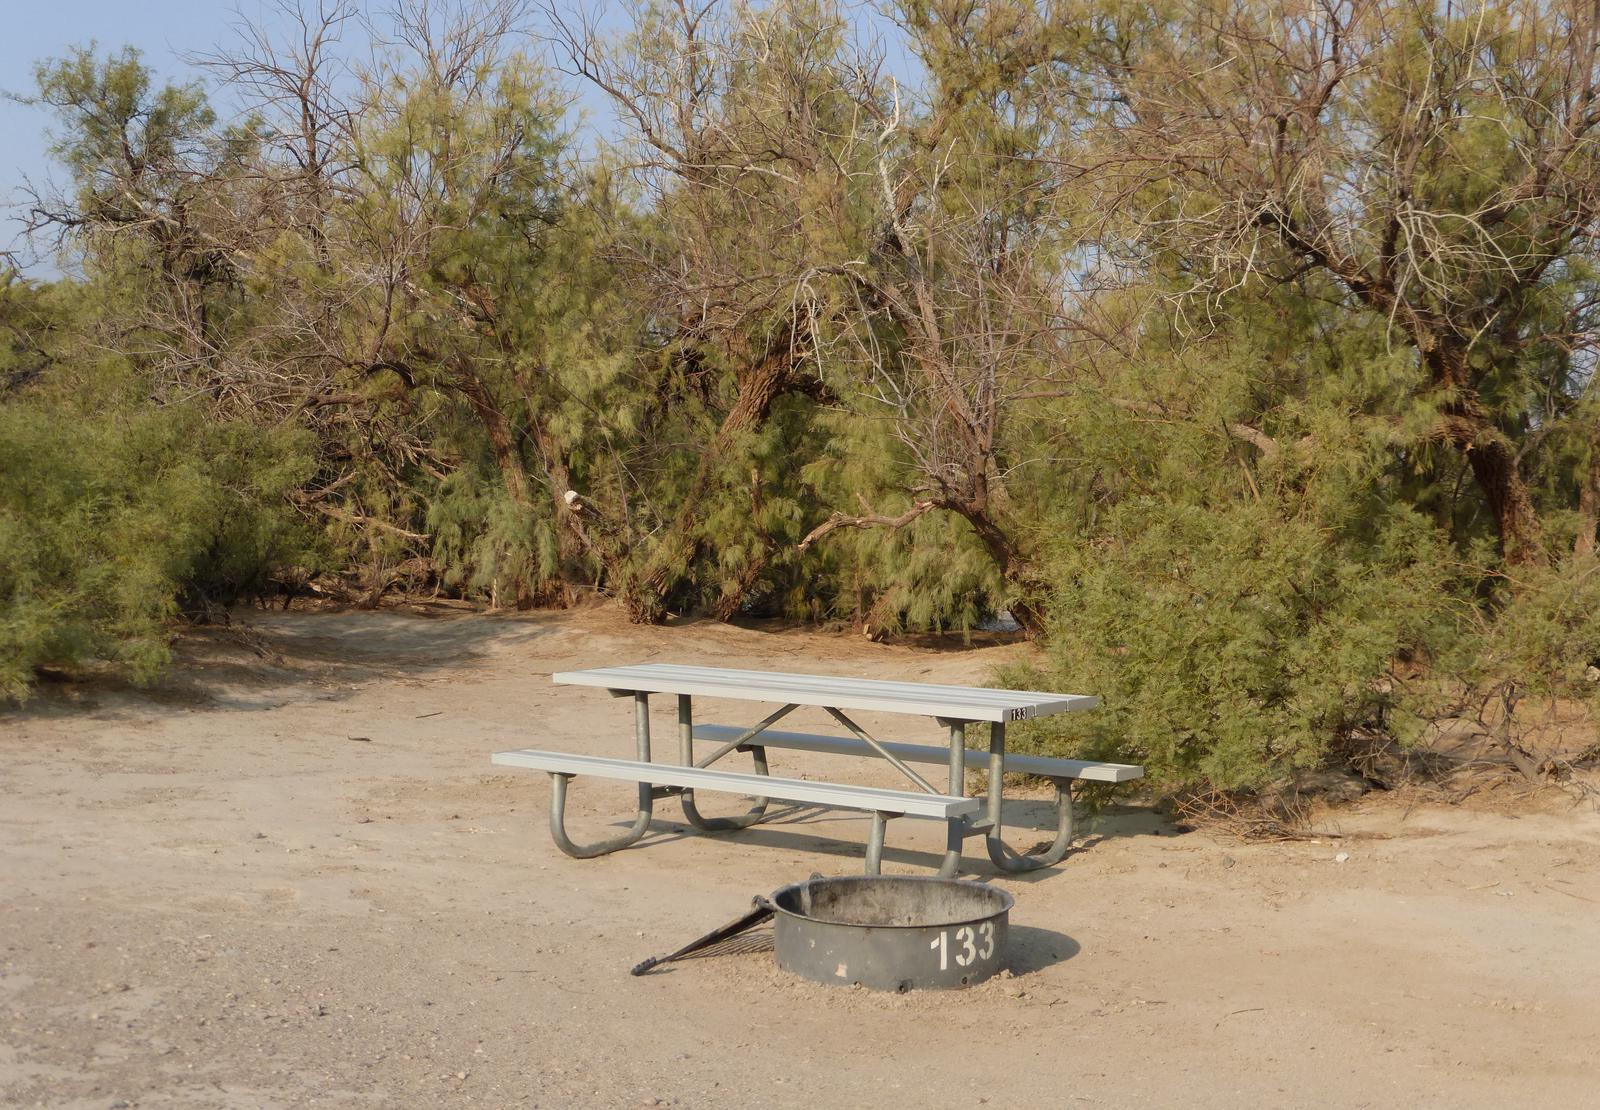 Tent only walk in site #133.  No campervans, RV's, or pop up tents.  One firepit with grate and one picnic table.  No utilities.